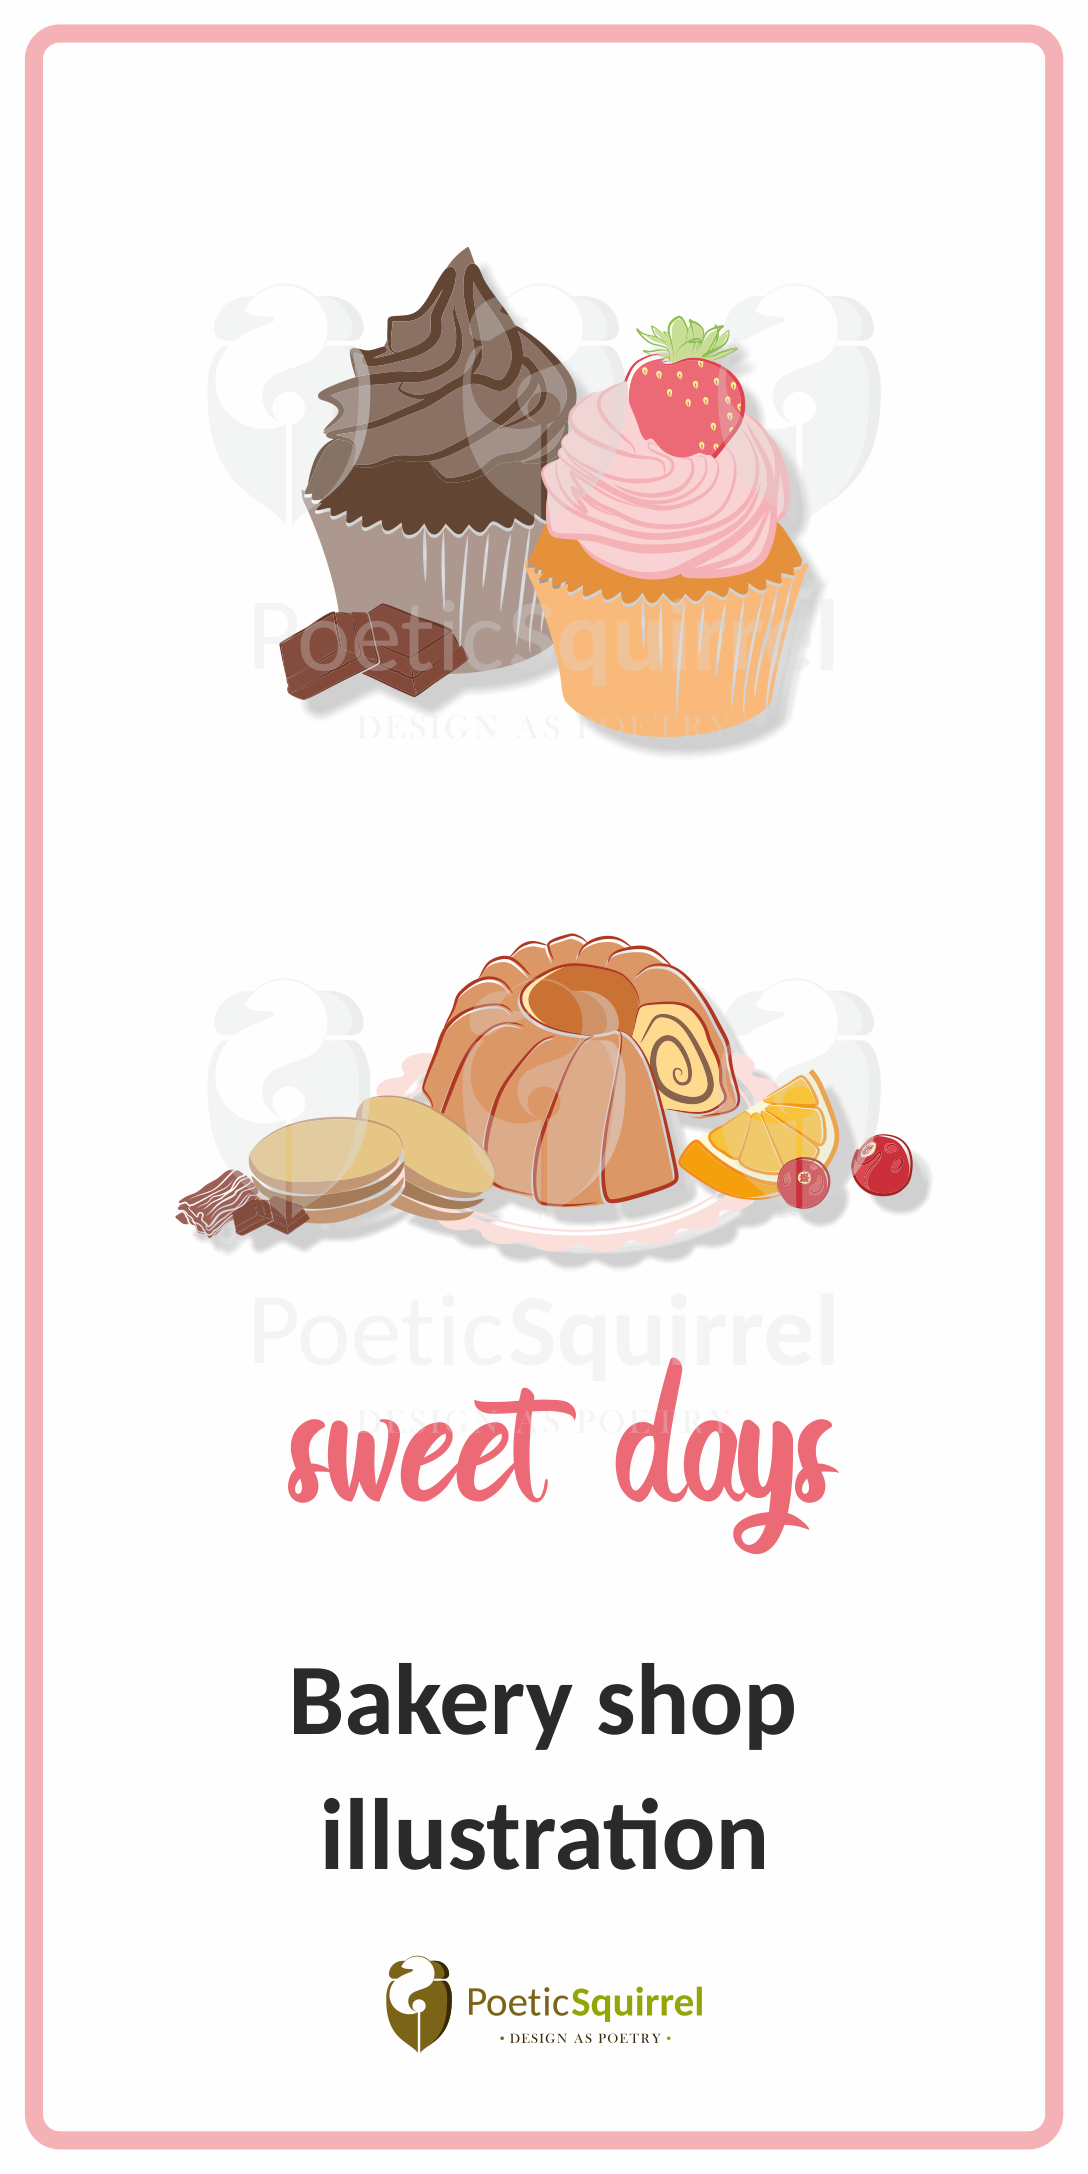 Bakery Illustration Cakes Cookies And Cupcakes Bakery Food Clipart Shop Illustration